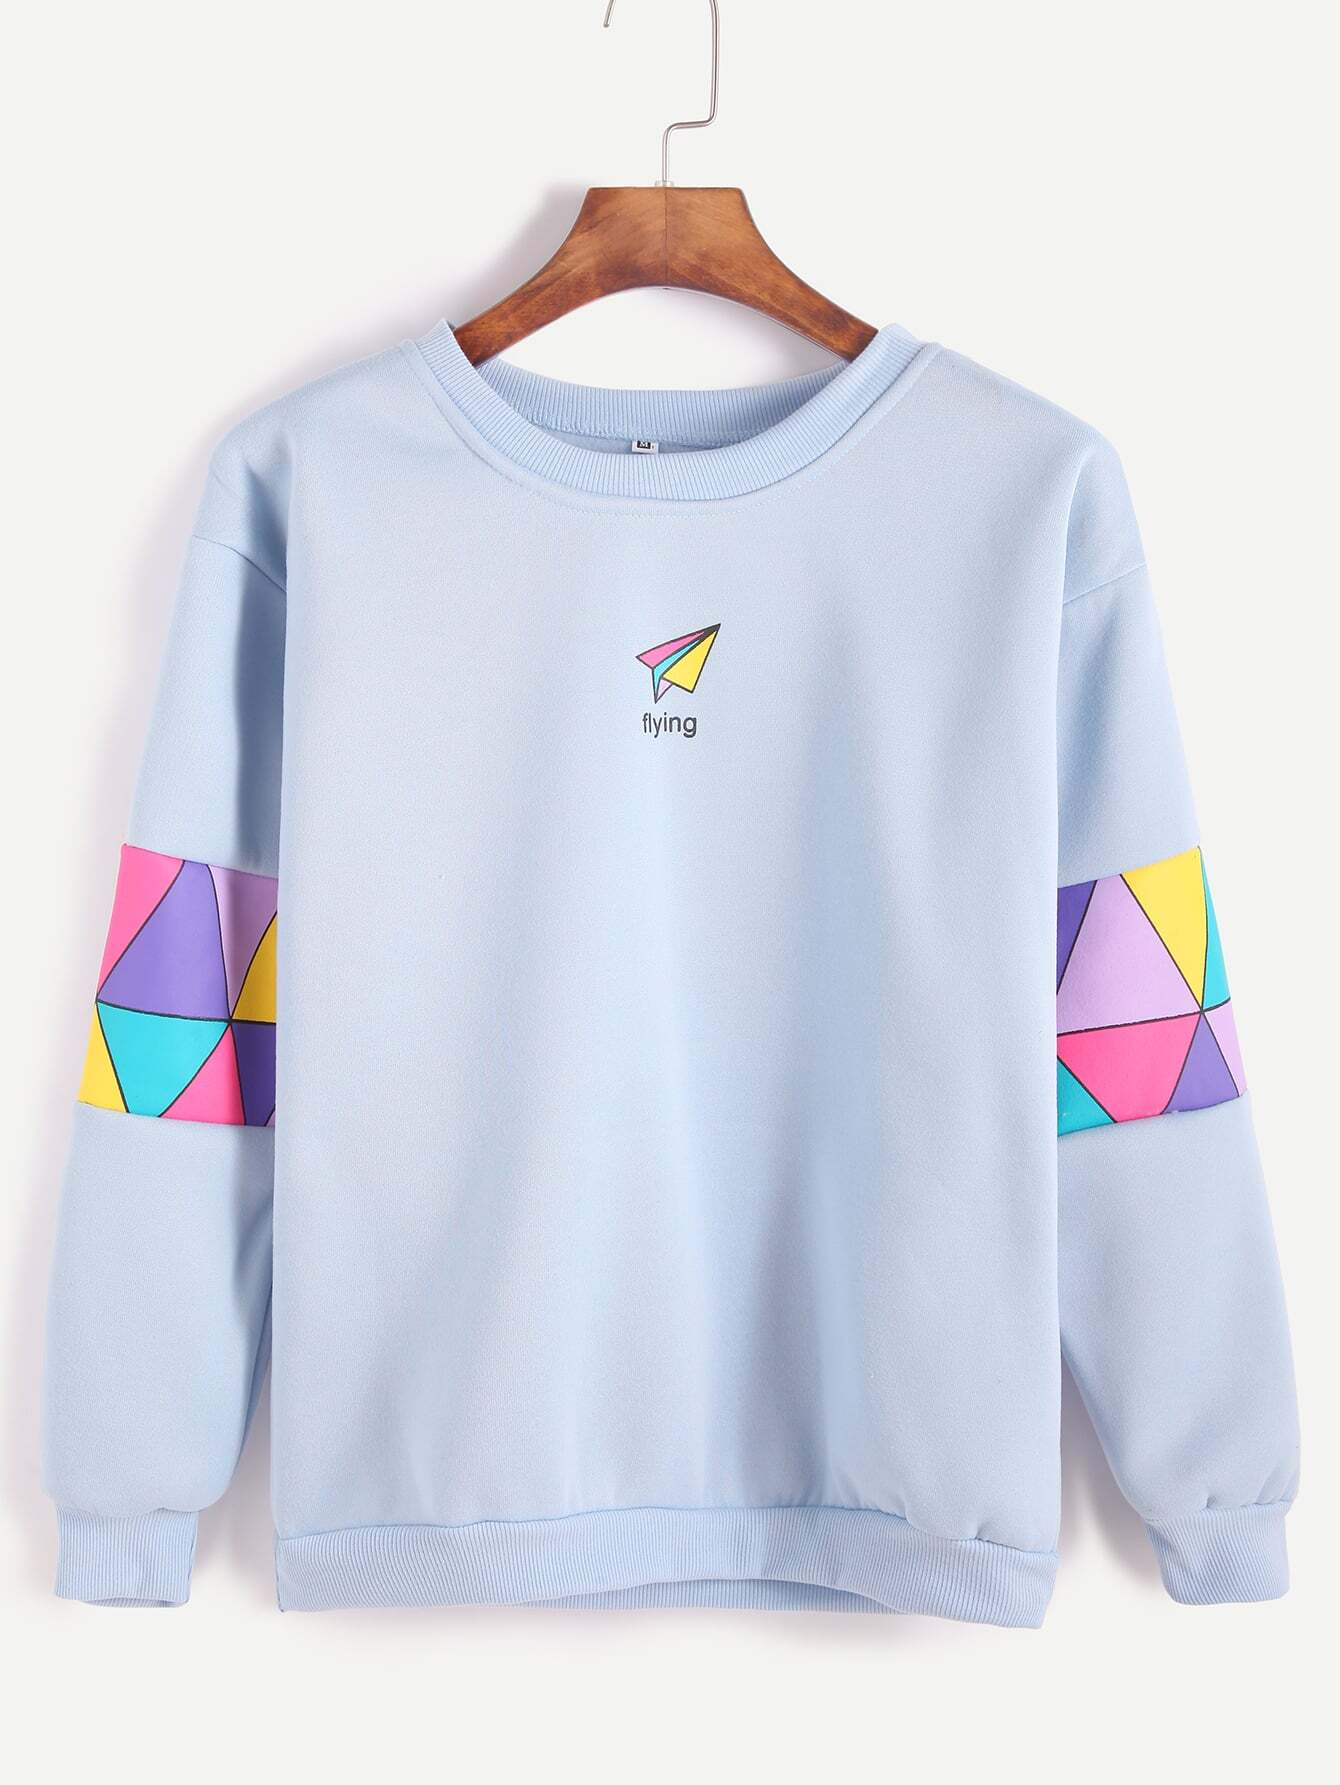 Shop for Print hoodies & sweatshirts from Zazzle. Choose a design from our huge selection of images, artwork, & photos.